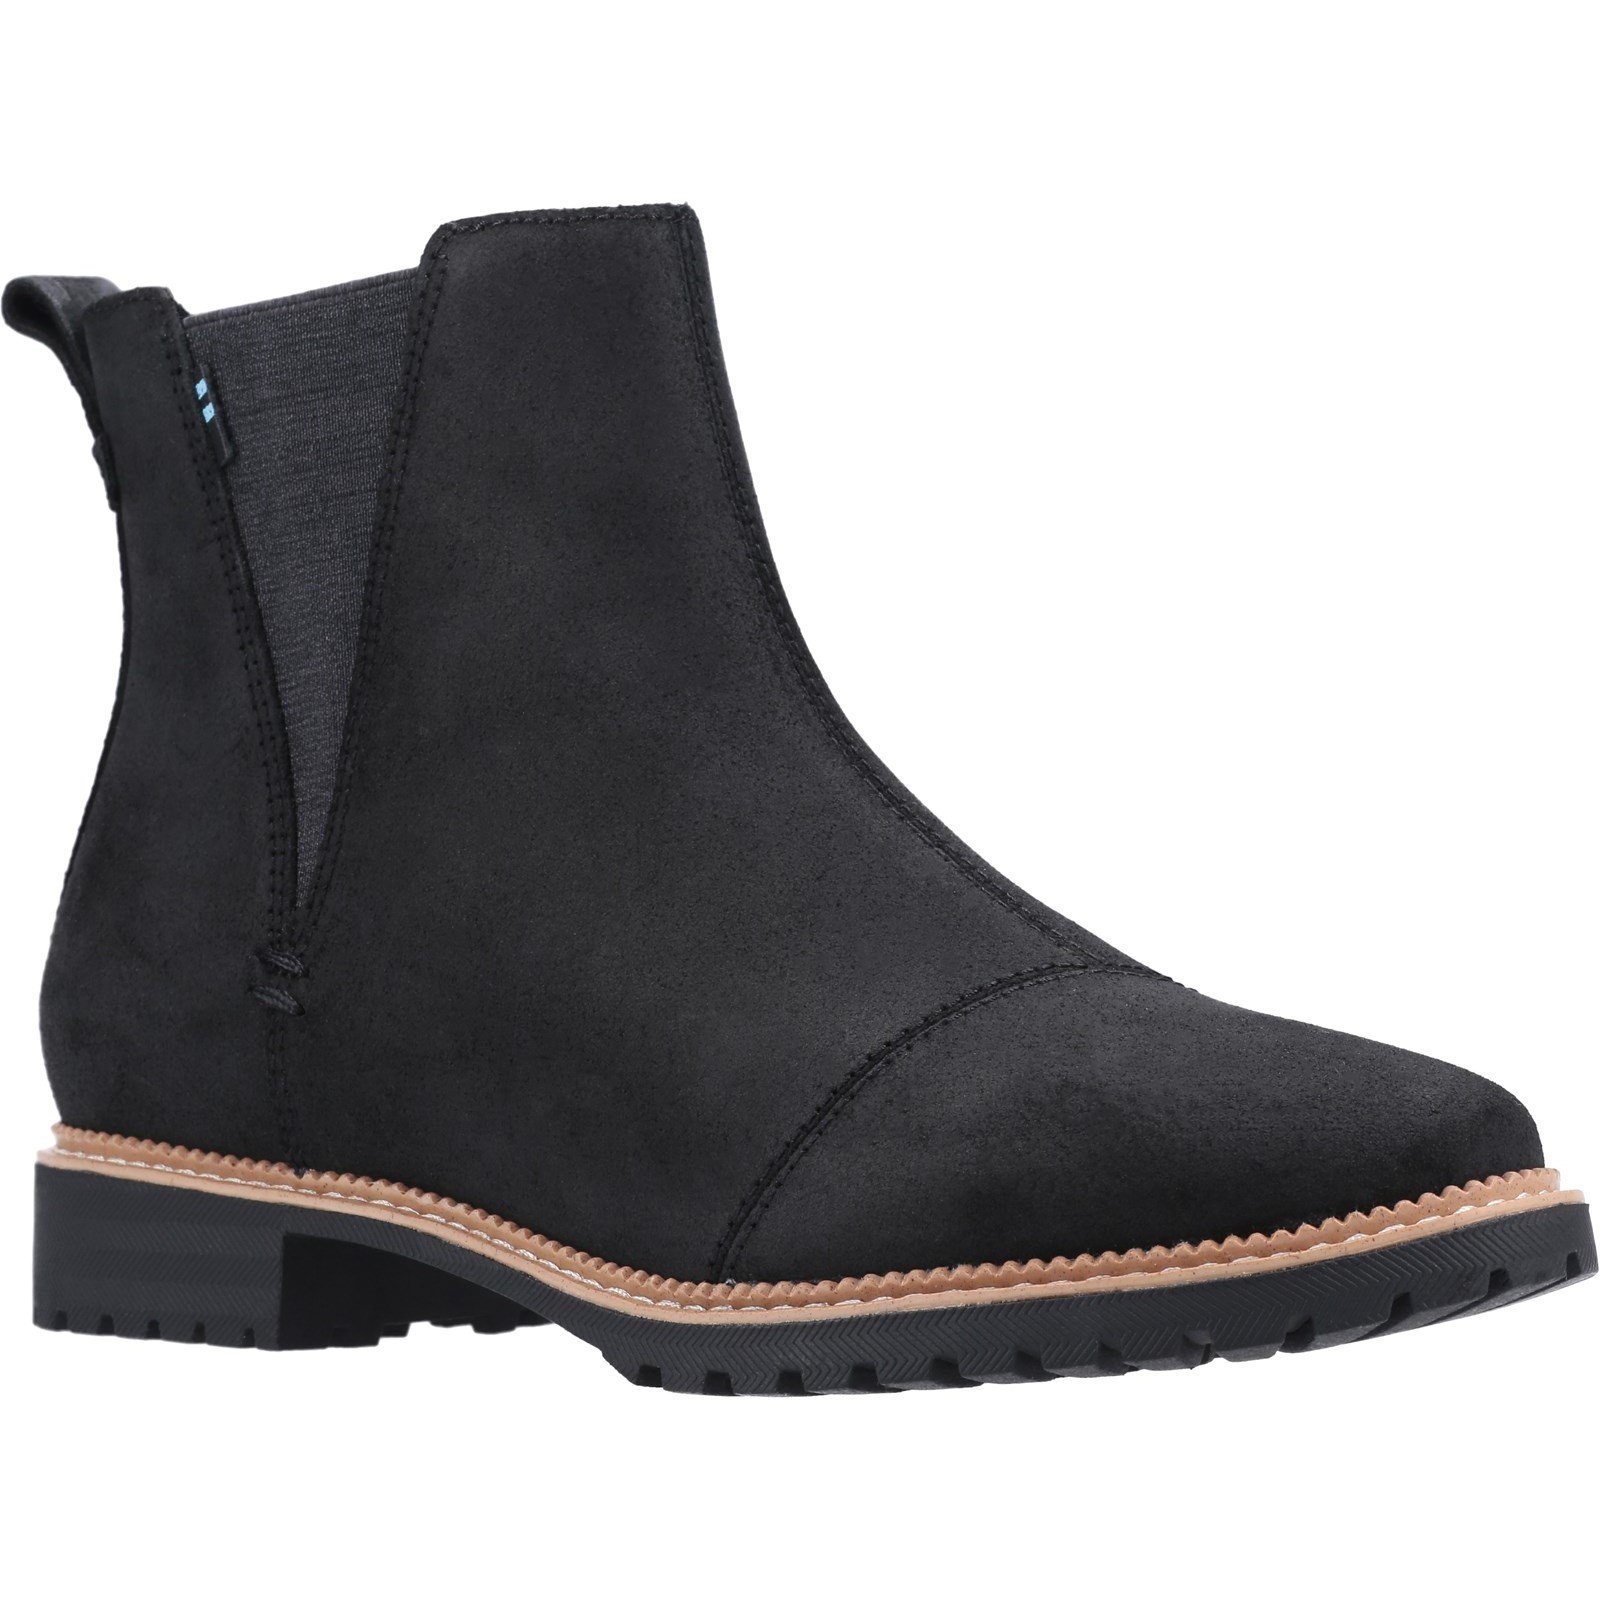 TOMS Women's Cleo Boot Multicolor 31596 - Water Resistant Black Leather 4